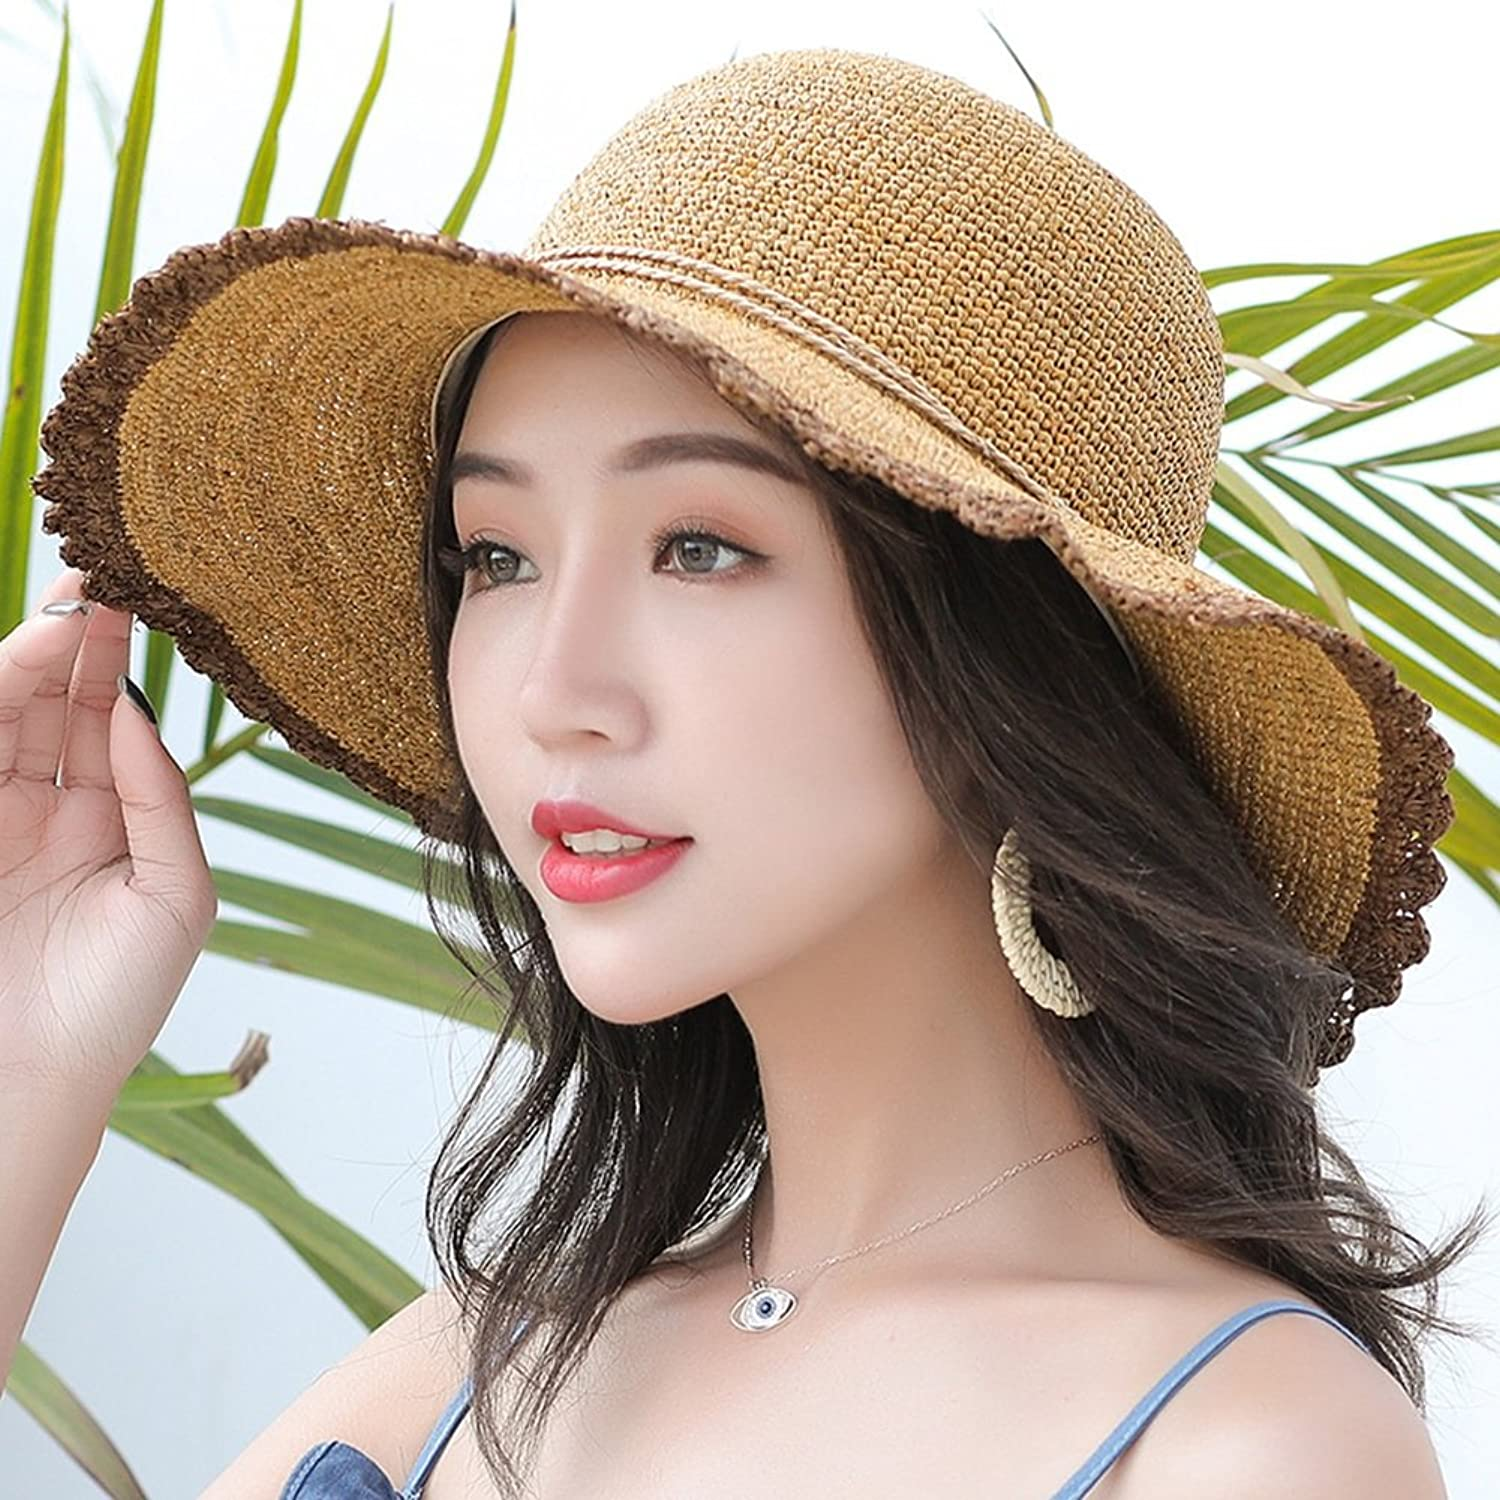 Cool Hat Women's Sombrero Sun Hat UV Predection Sun Visor Foldable SweatProof Breathable Travel Casual Hat (4 colors Optional)